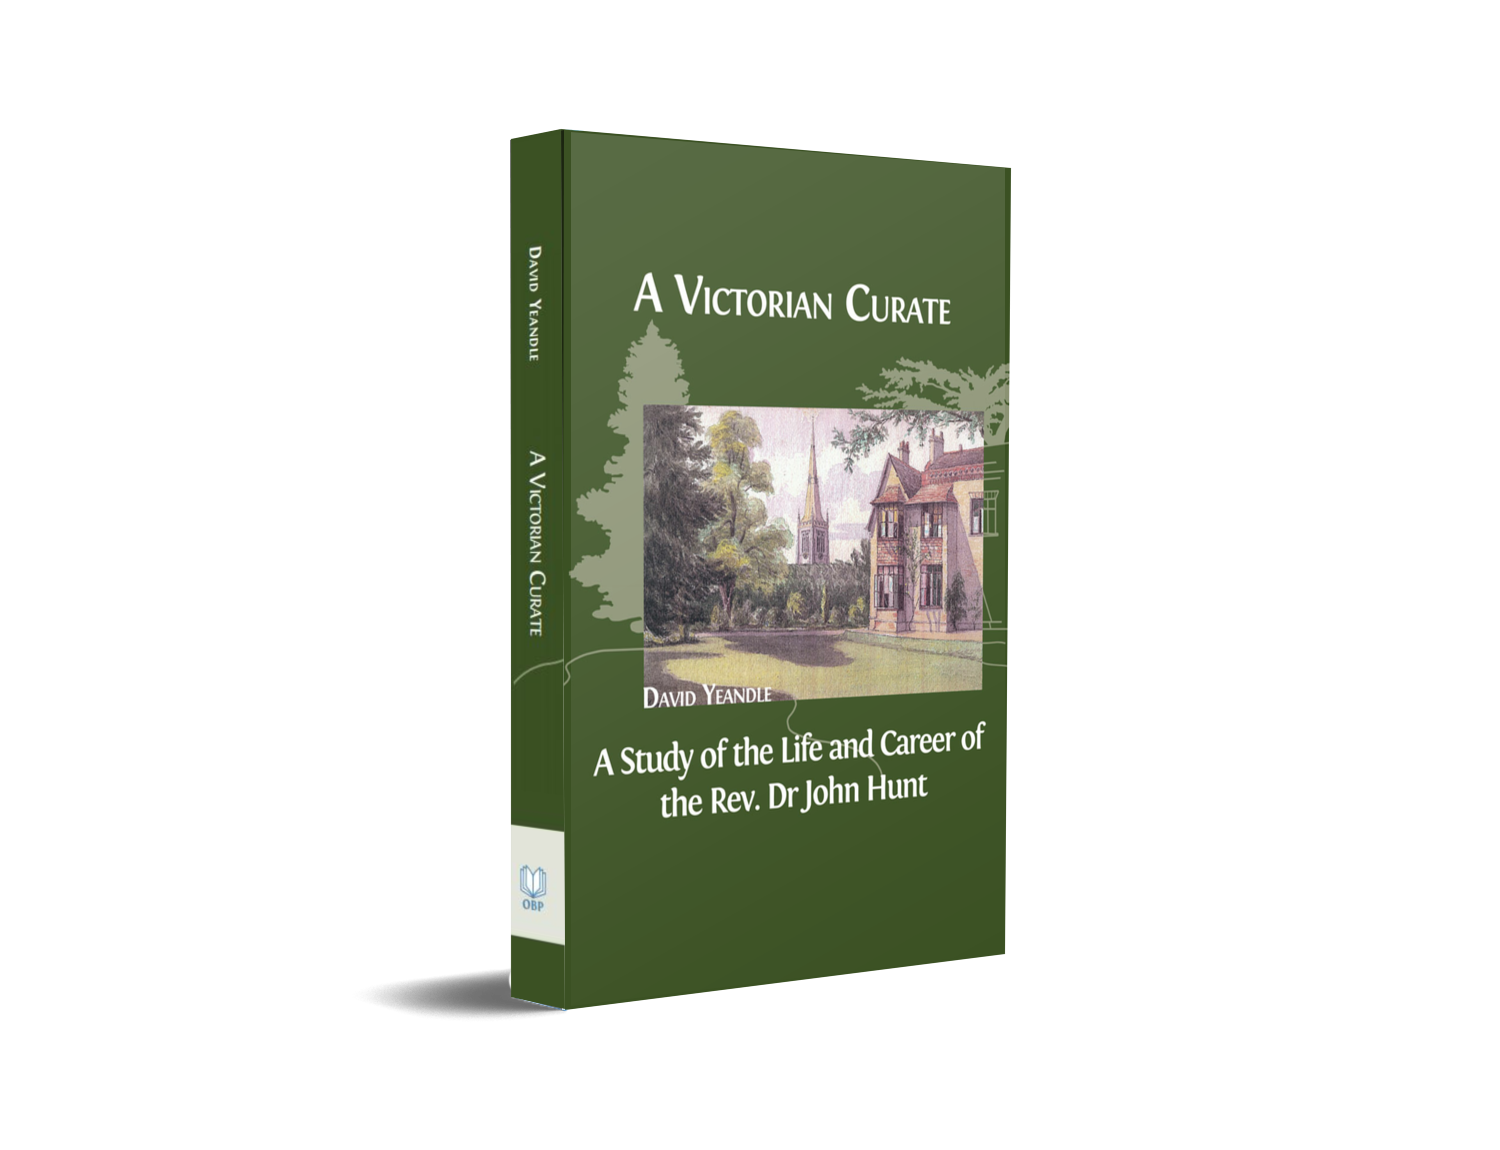 A Victorian Curate: A Study of the Life and Career of the Rev. Dr John Hunt